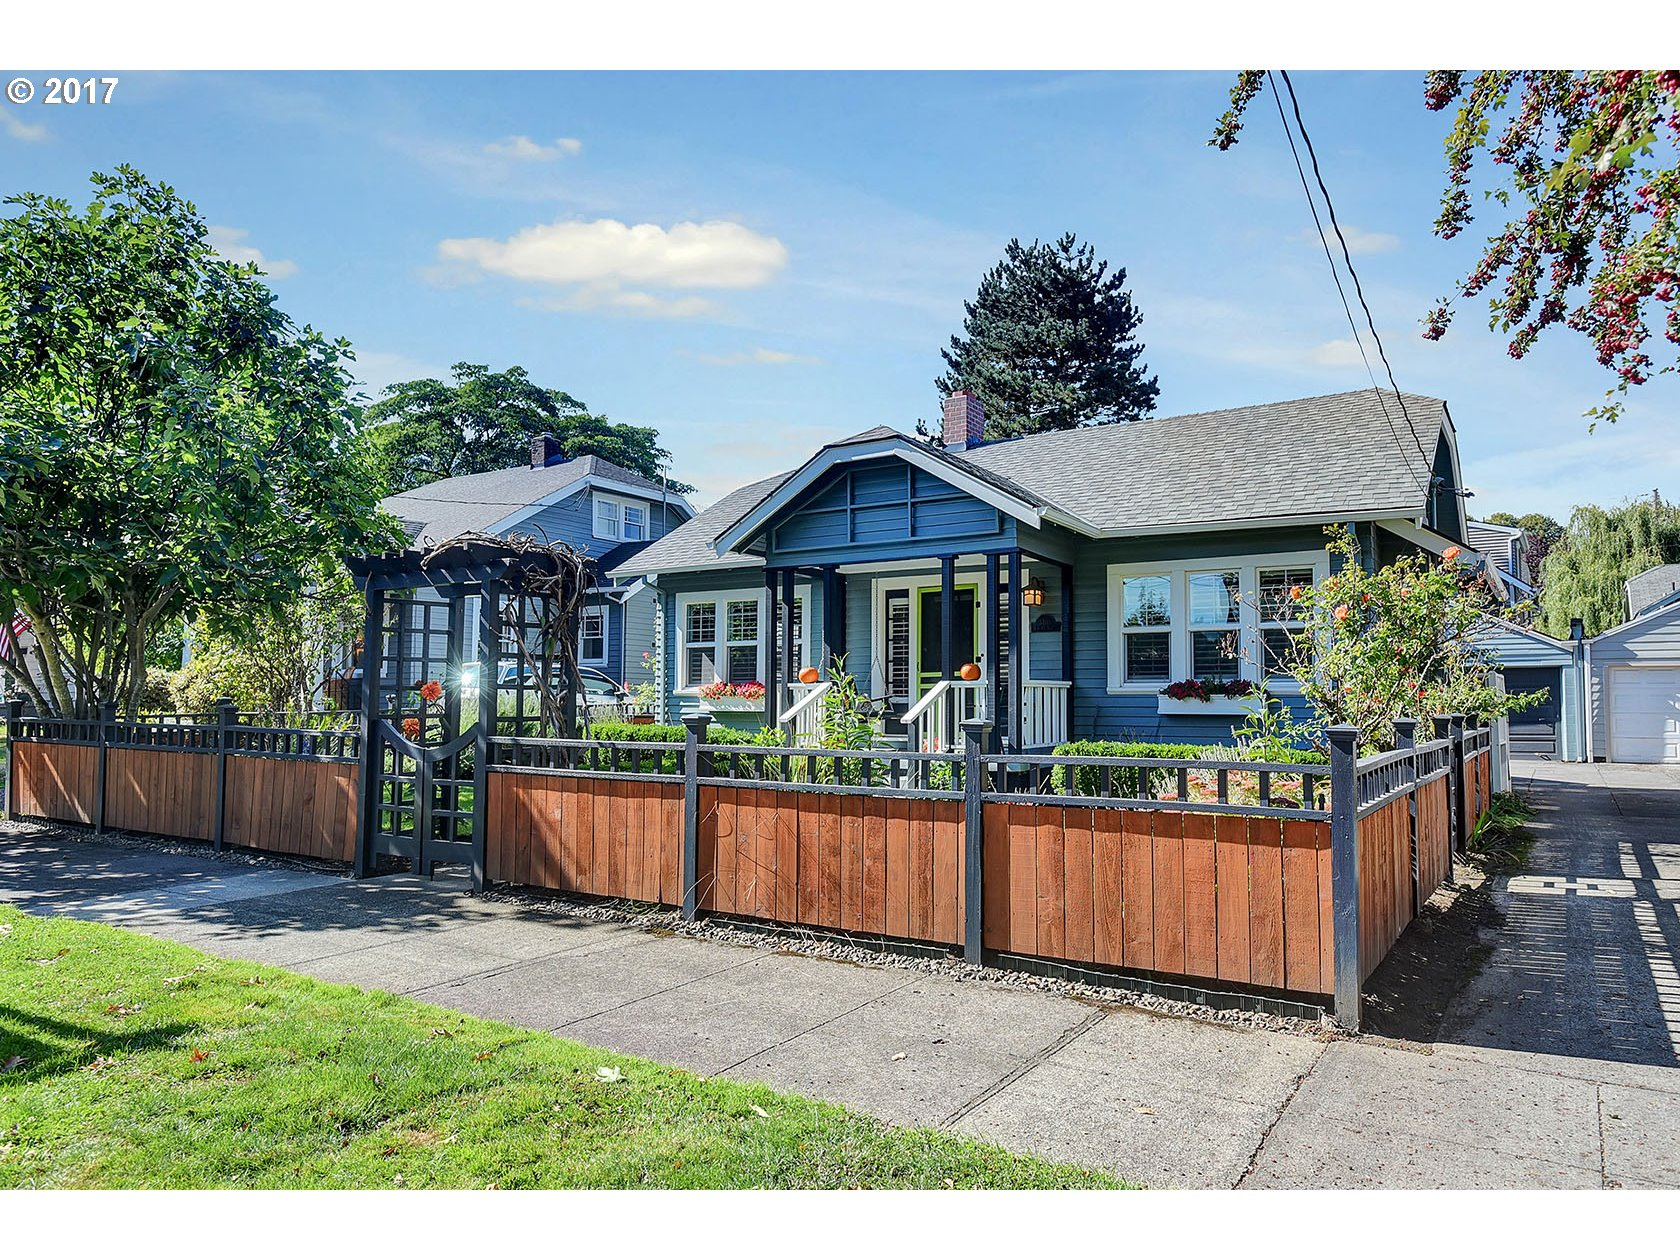 1756 sq. ft 3 bedrooms 2 bathrooms  House For Sale, Portland, OR